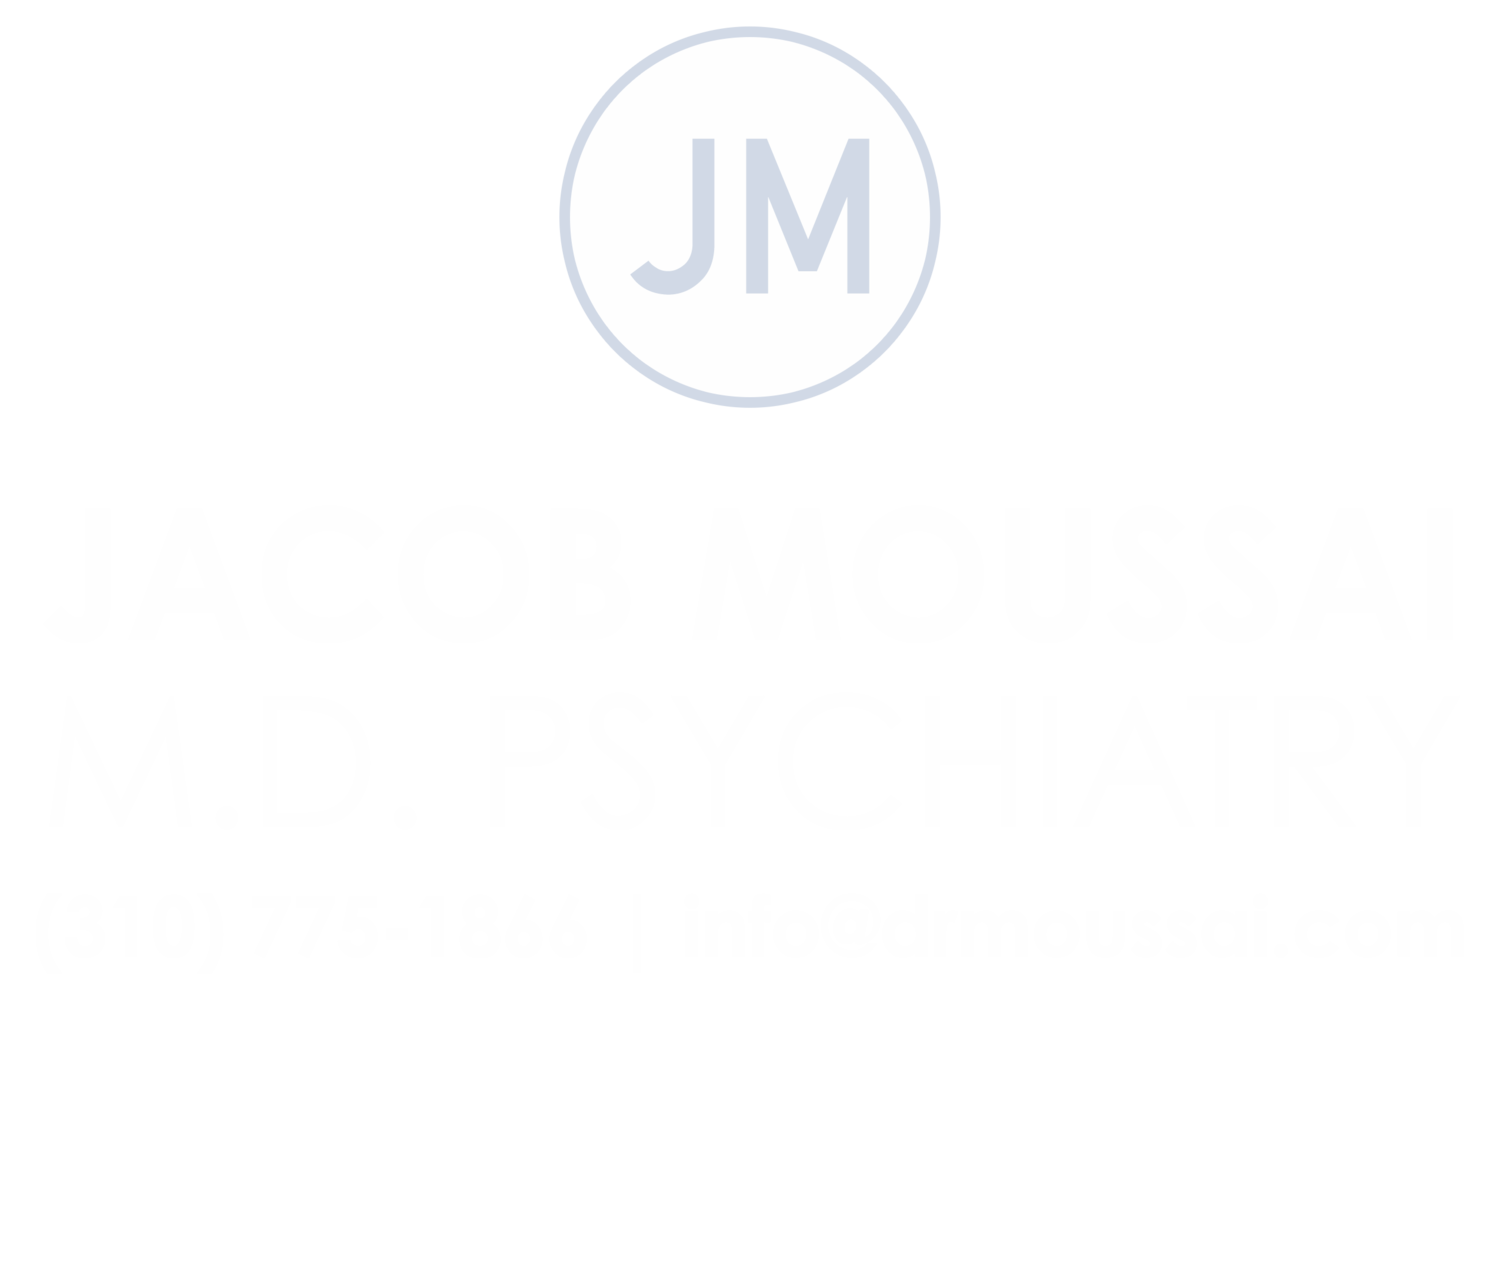 Jacob Moussai, M.D. Psychiatry